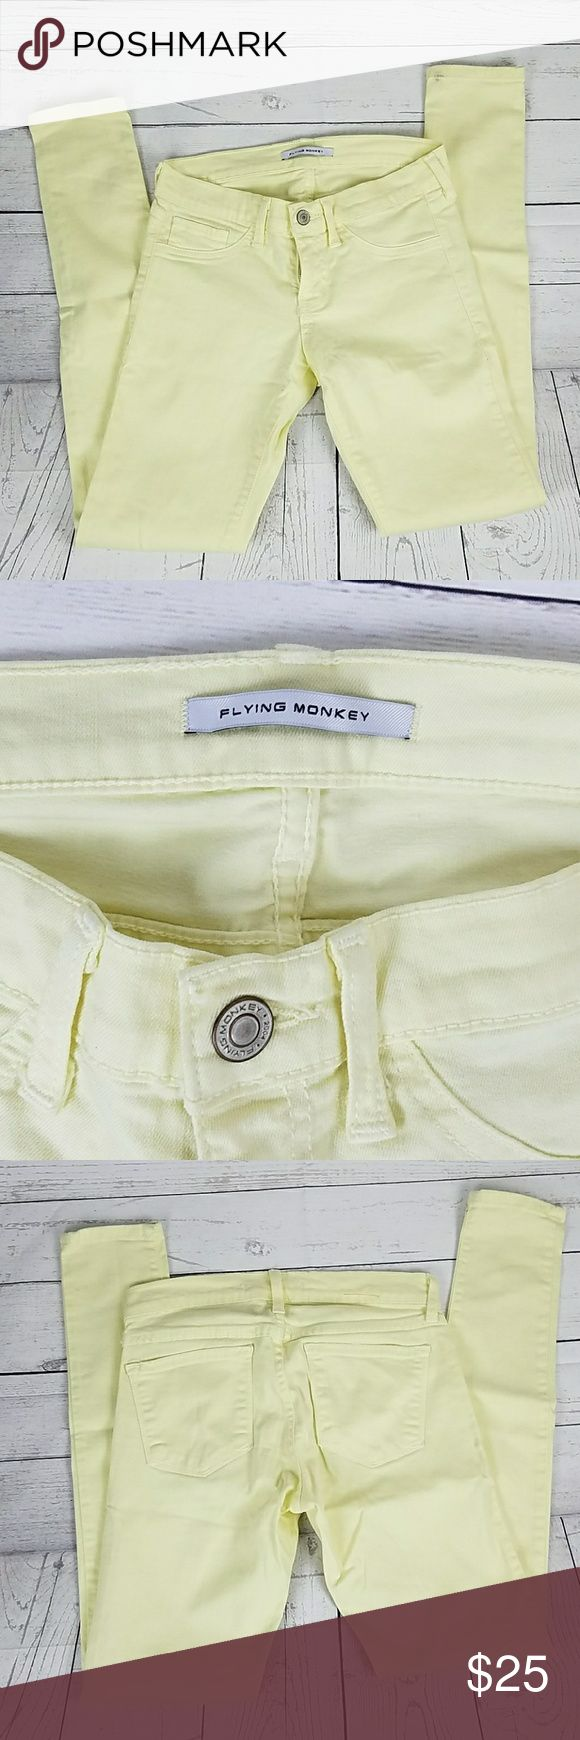 Flying Monkey Jeans Skinny Size 26 These Women's Flying Monkey Jeans are in good condition. Gently used. Skinny. Just needs to be washed. Little dirt on bottom of pant leg. Seen in picture 1. Size 26 Inseam 29 Rise 7 inches Flying Monkey Jeans Skinny